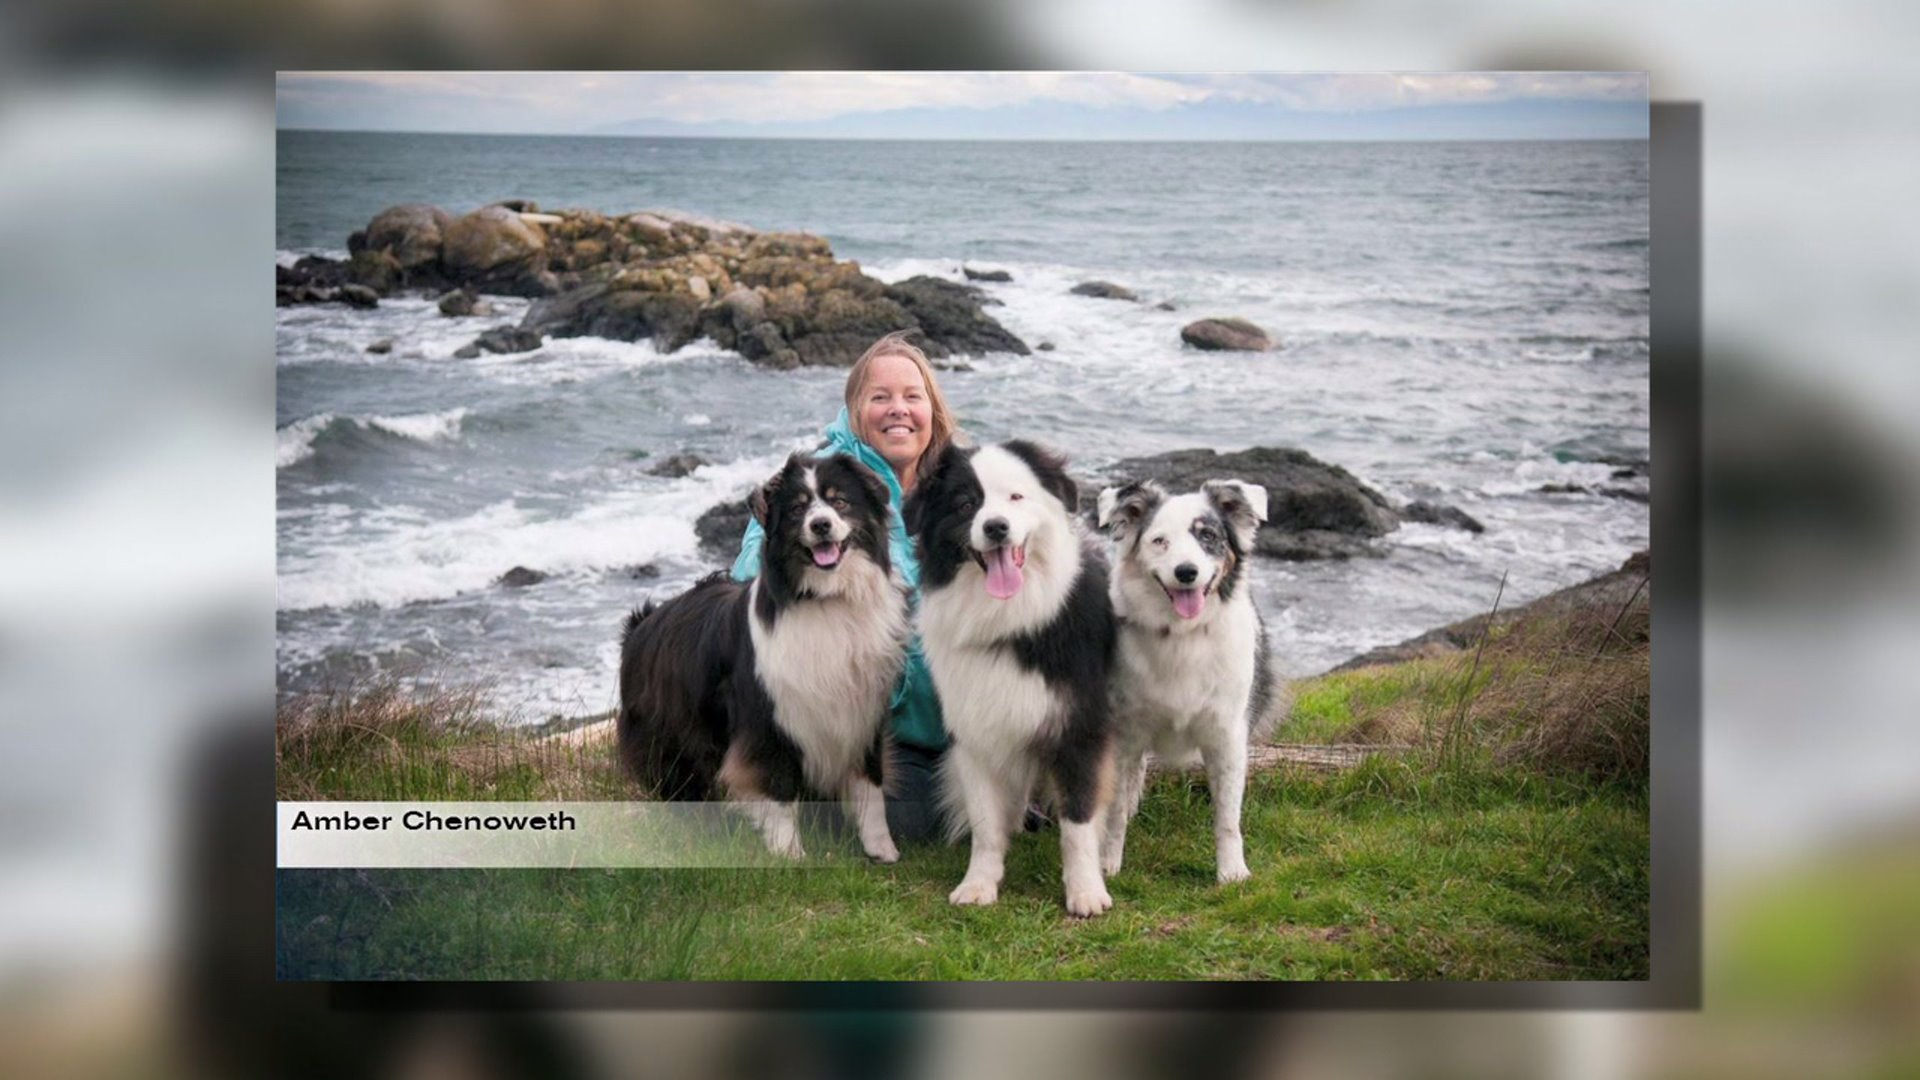 Dying Woman Turns to Facebook to Find New Home for Beloved Dogs